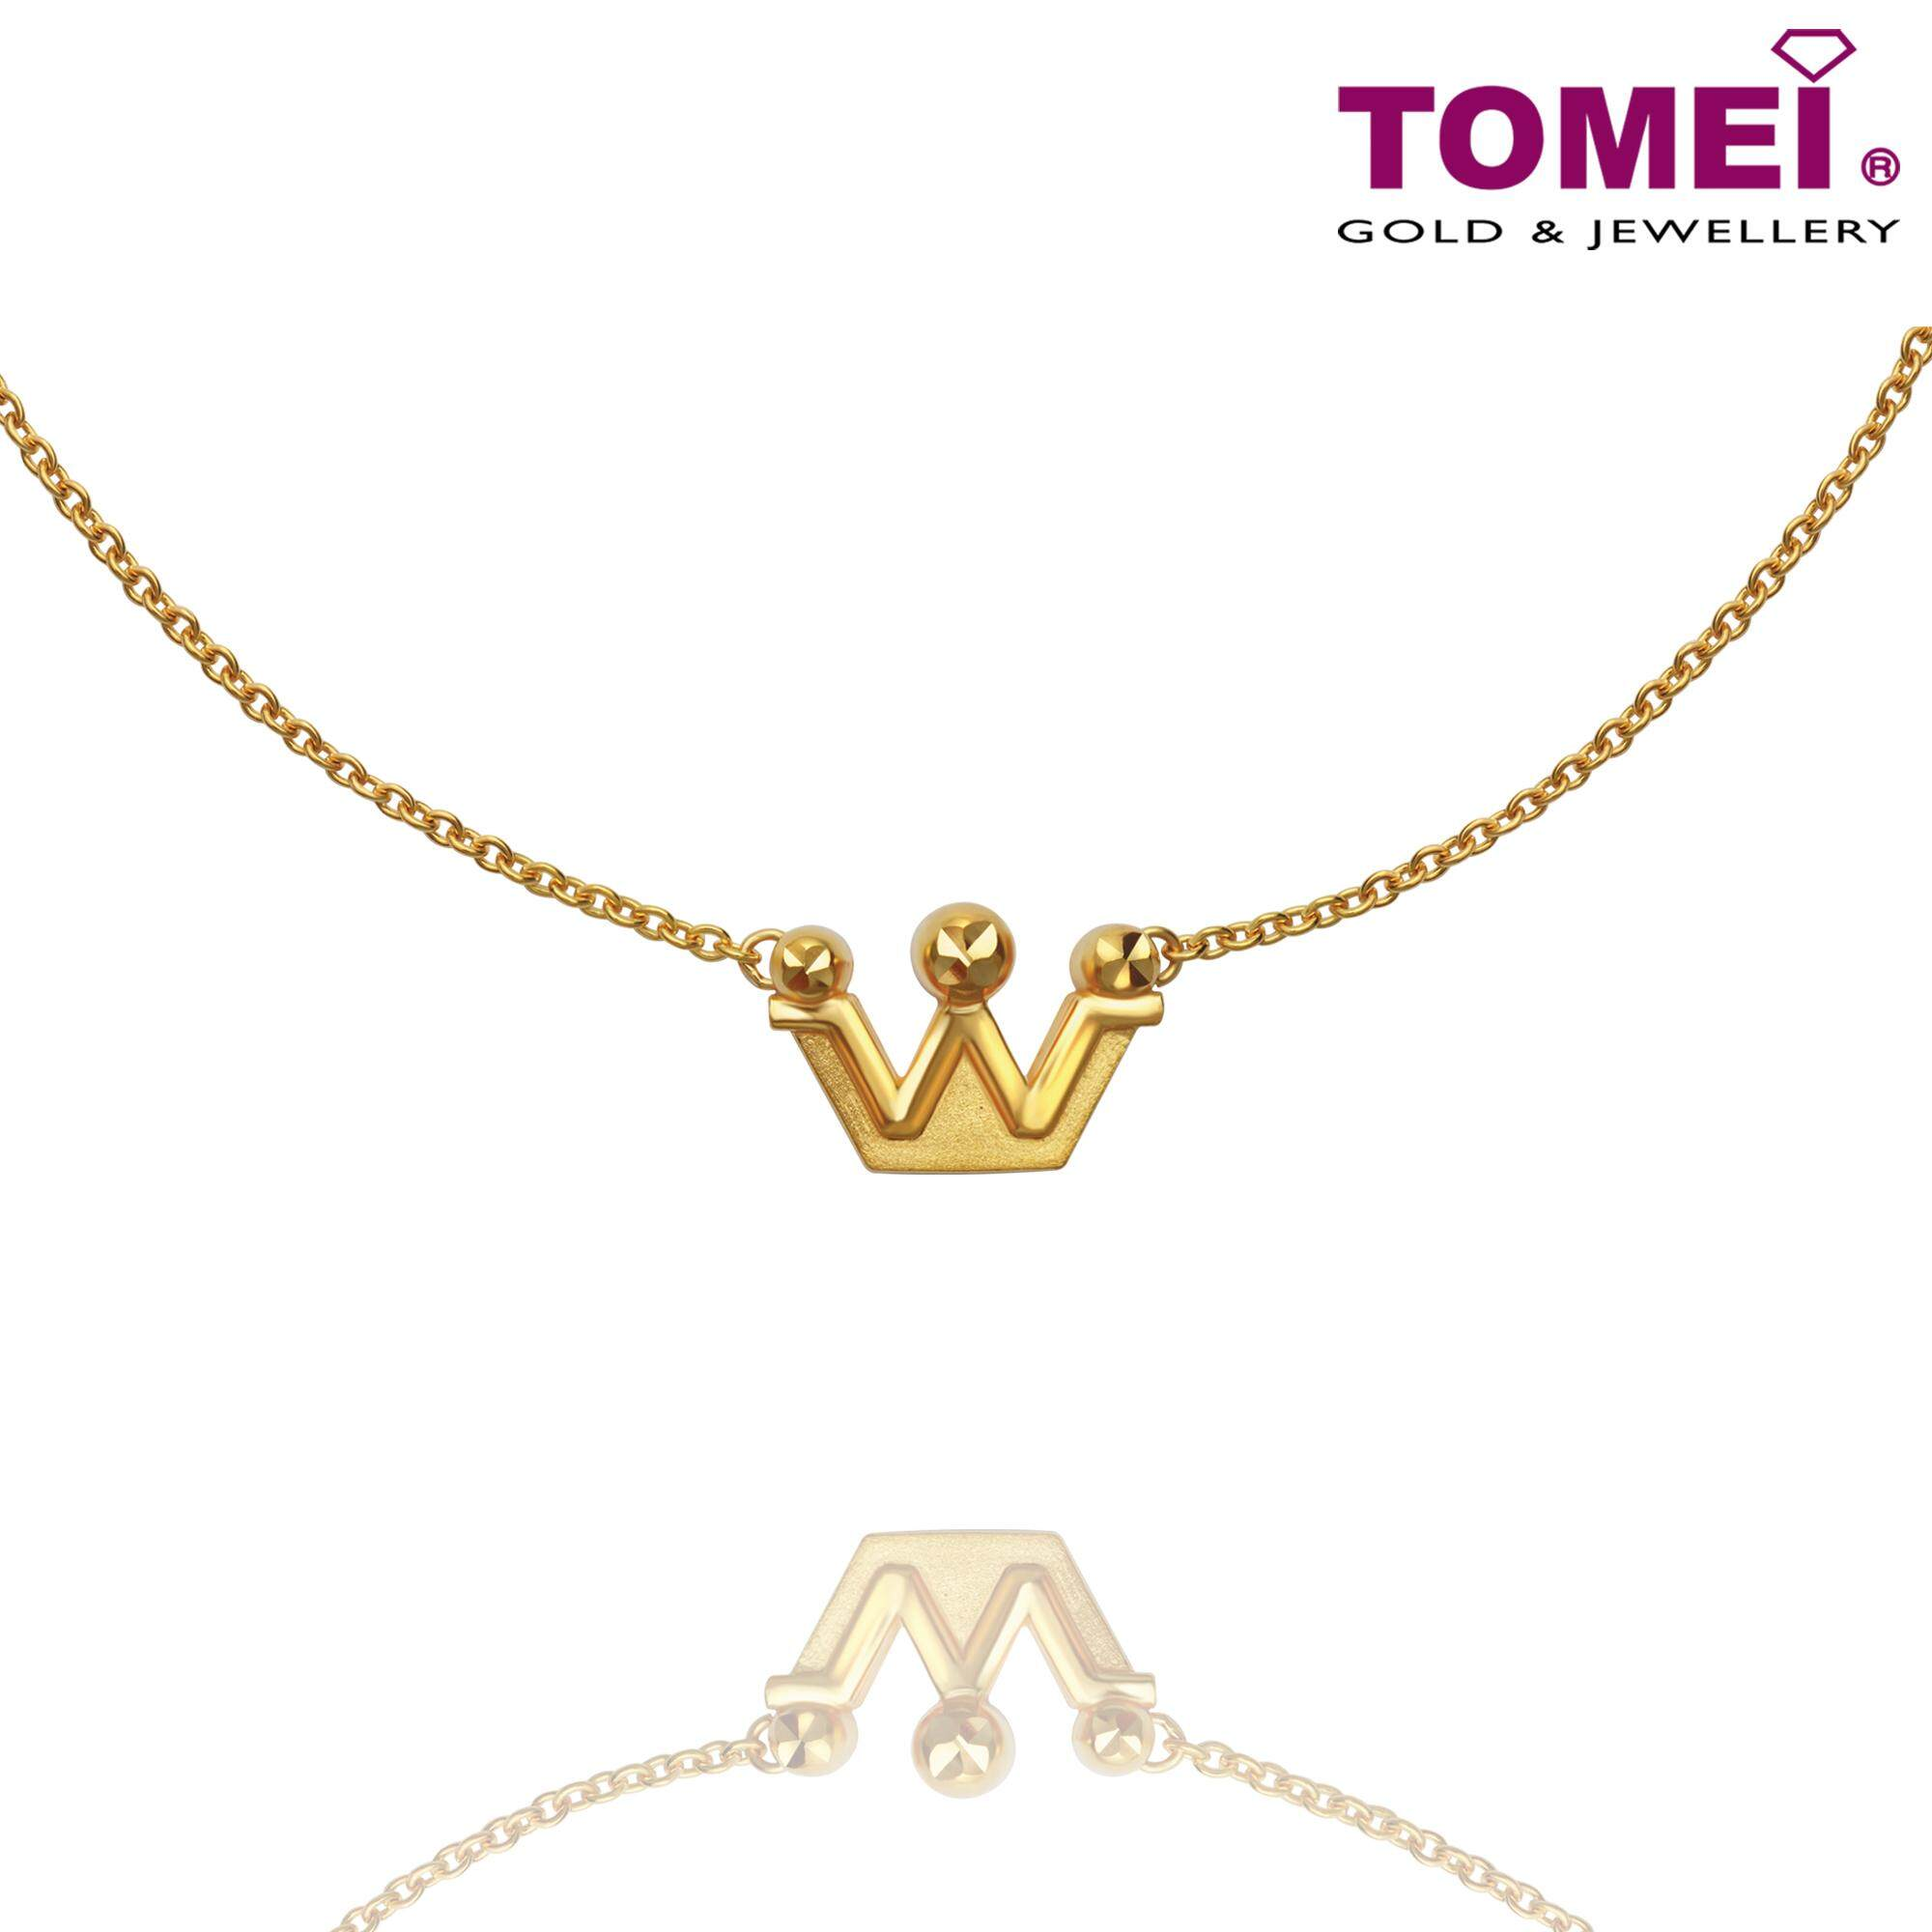 Tomei Yellow Gold 916 (22K) The Noble Collection Necklace (NN2758-1C)